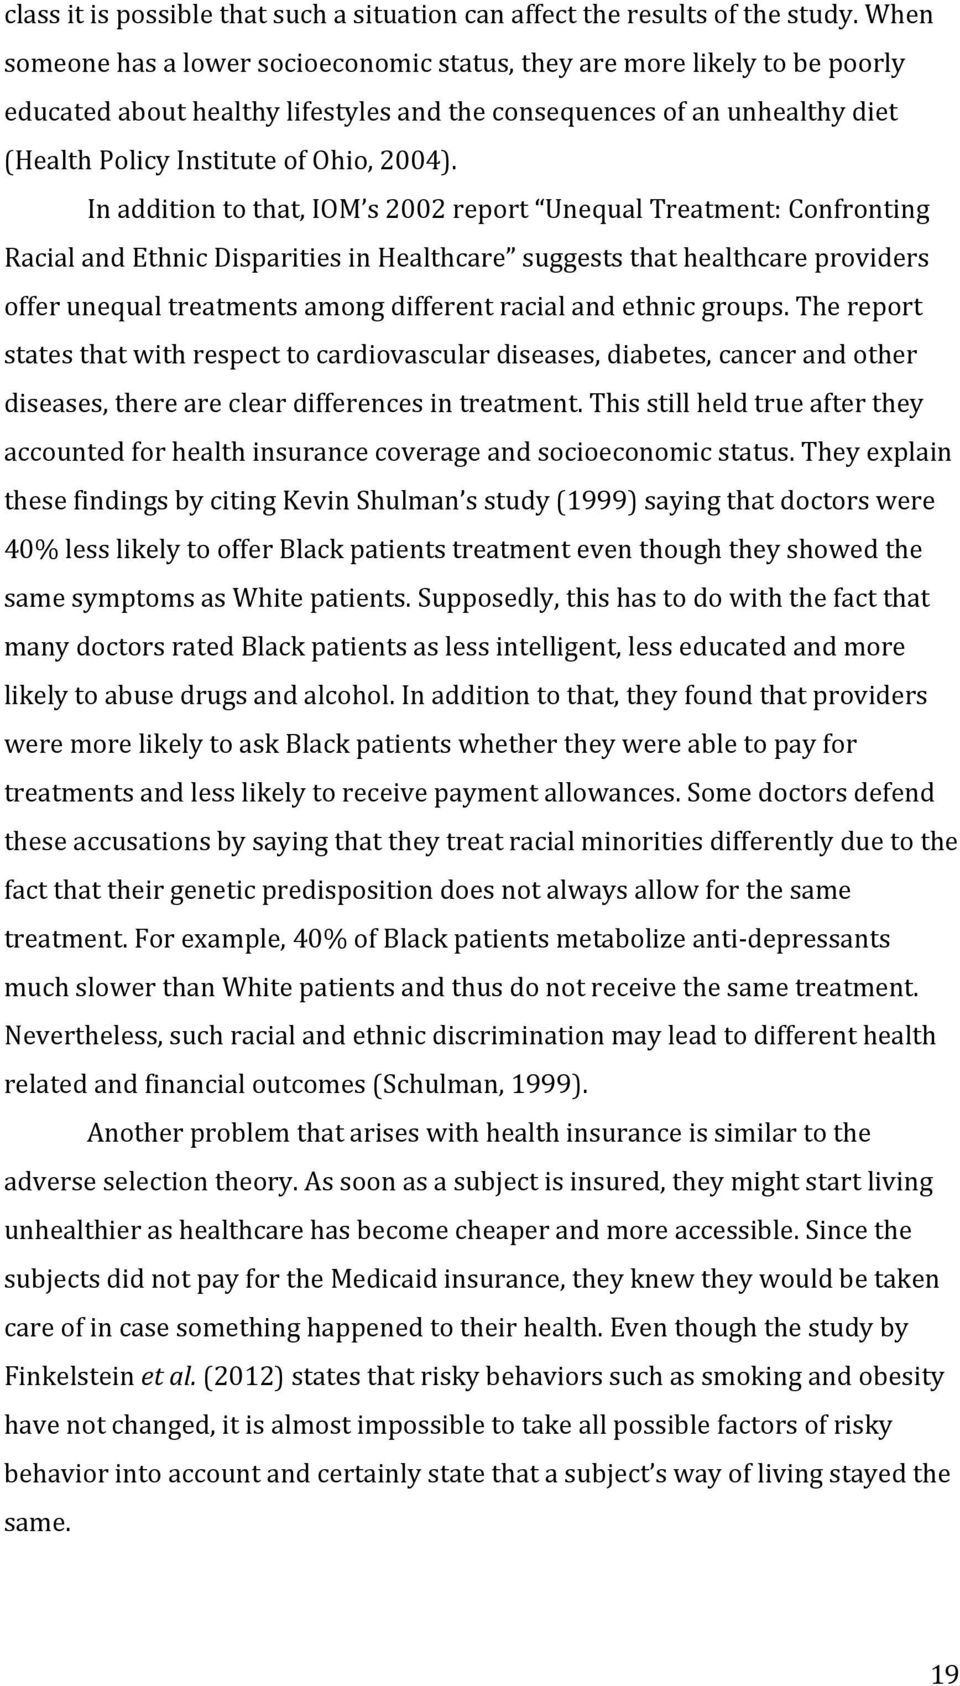 In addition to that, IOM s 2002 report Unequal Treatment: Confronting Racial and Ethnic Disparities in Healthcare suggests that healthcare providers offer unequal treatments among different racial